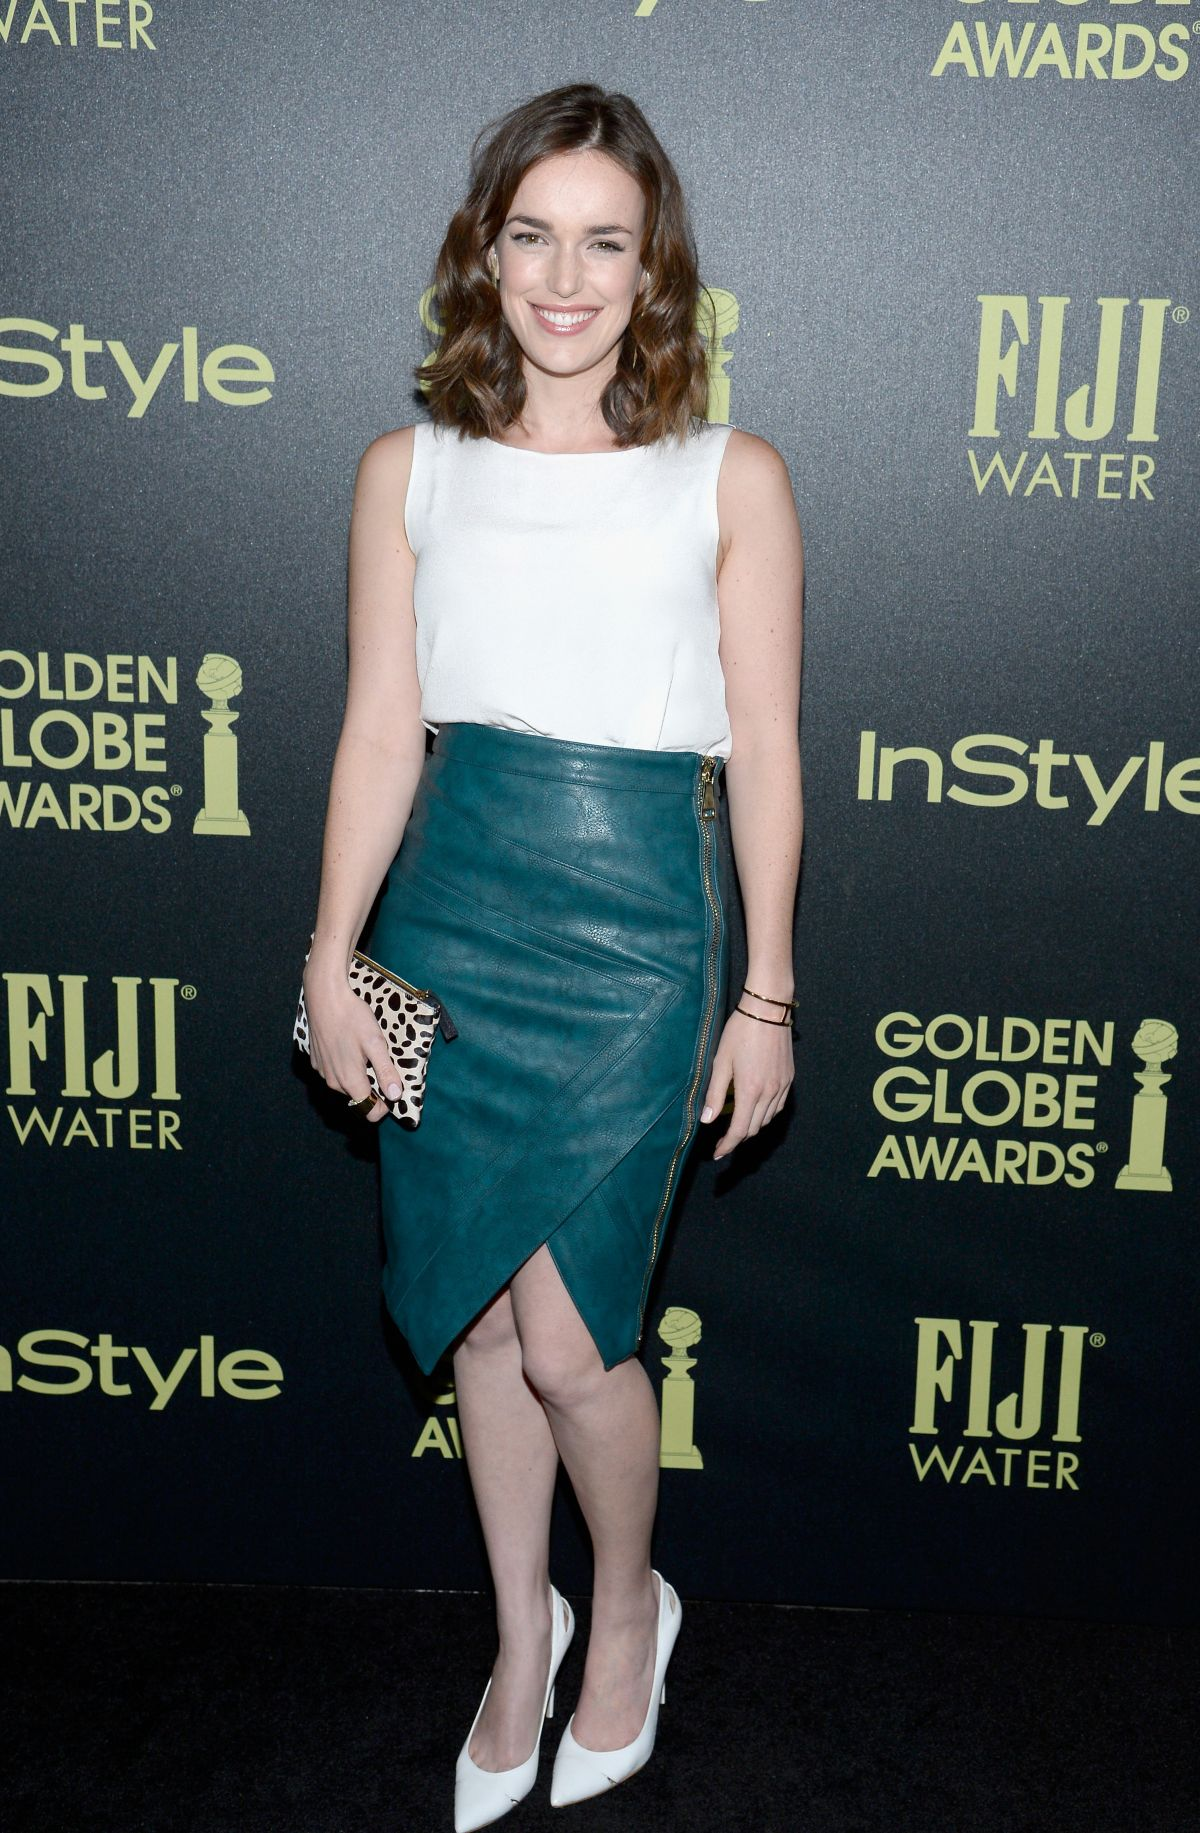 ELIZABETH HENSTRIDGE at hfpa and Instyle Celebrate 2016 Golden Globe Award Season in West Hollywood 11/17/2015